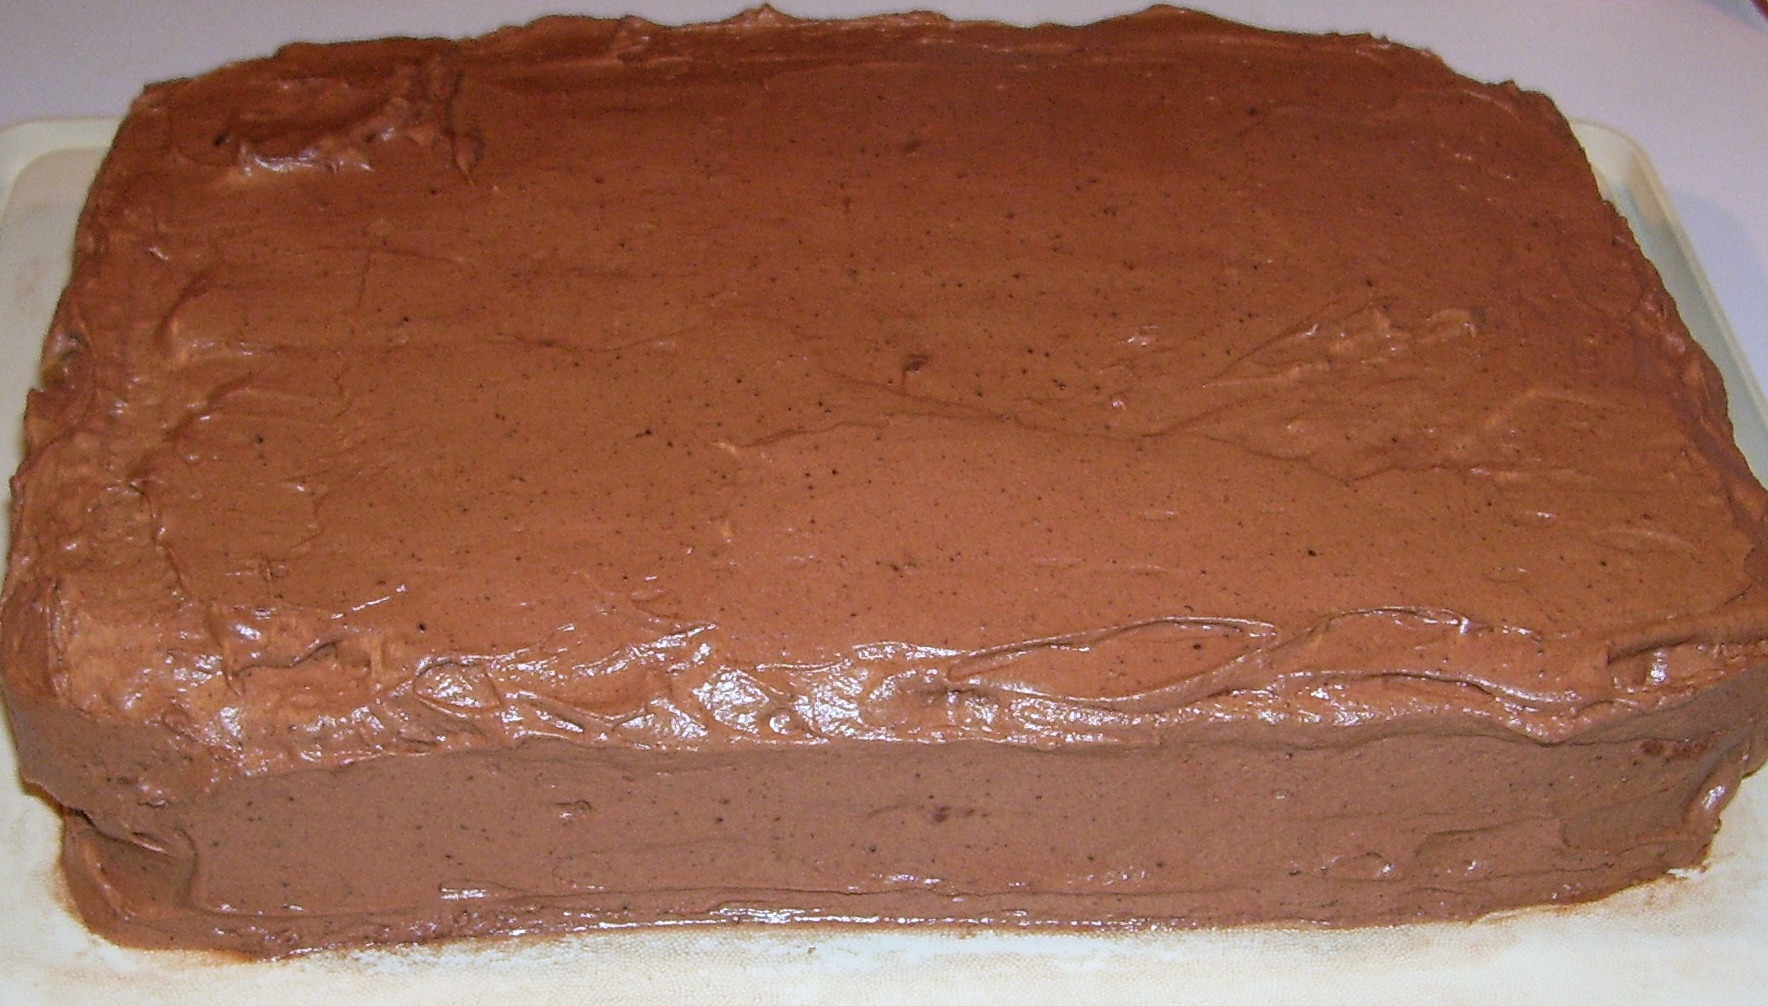 Chocolate Marble Cake with Fluffy Chocolate Or Creamy Buttercream Frosting.